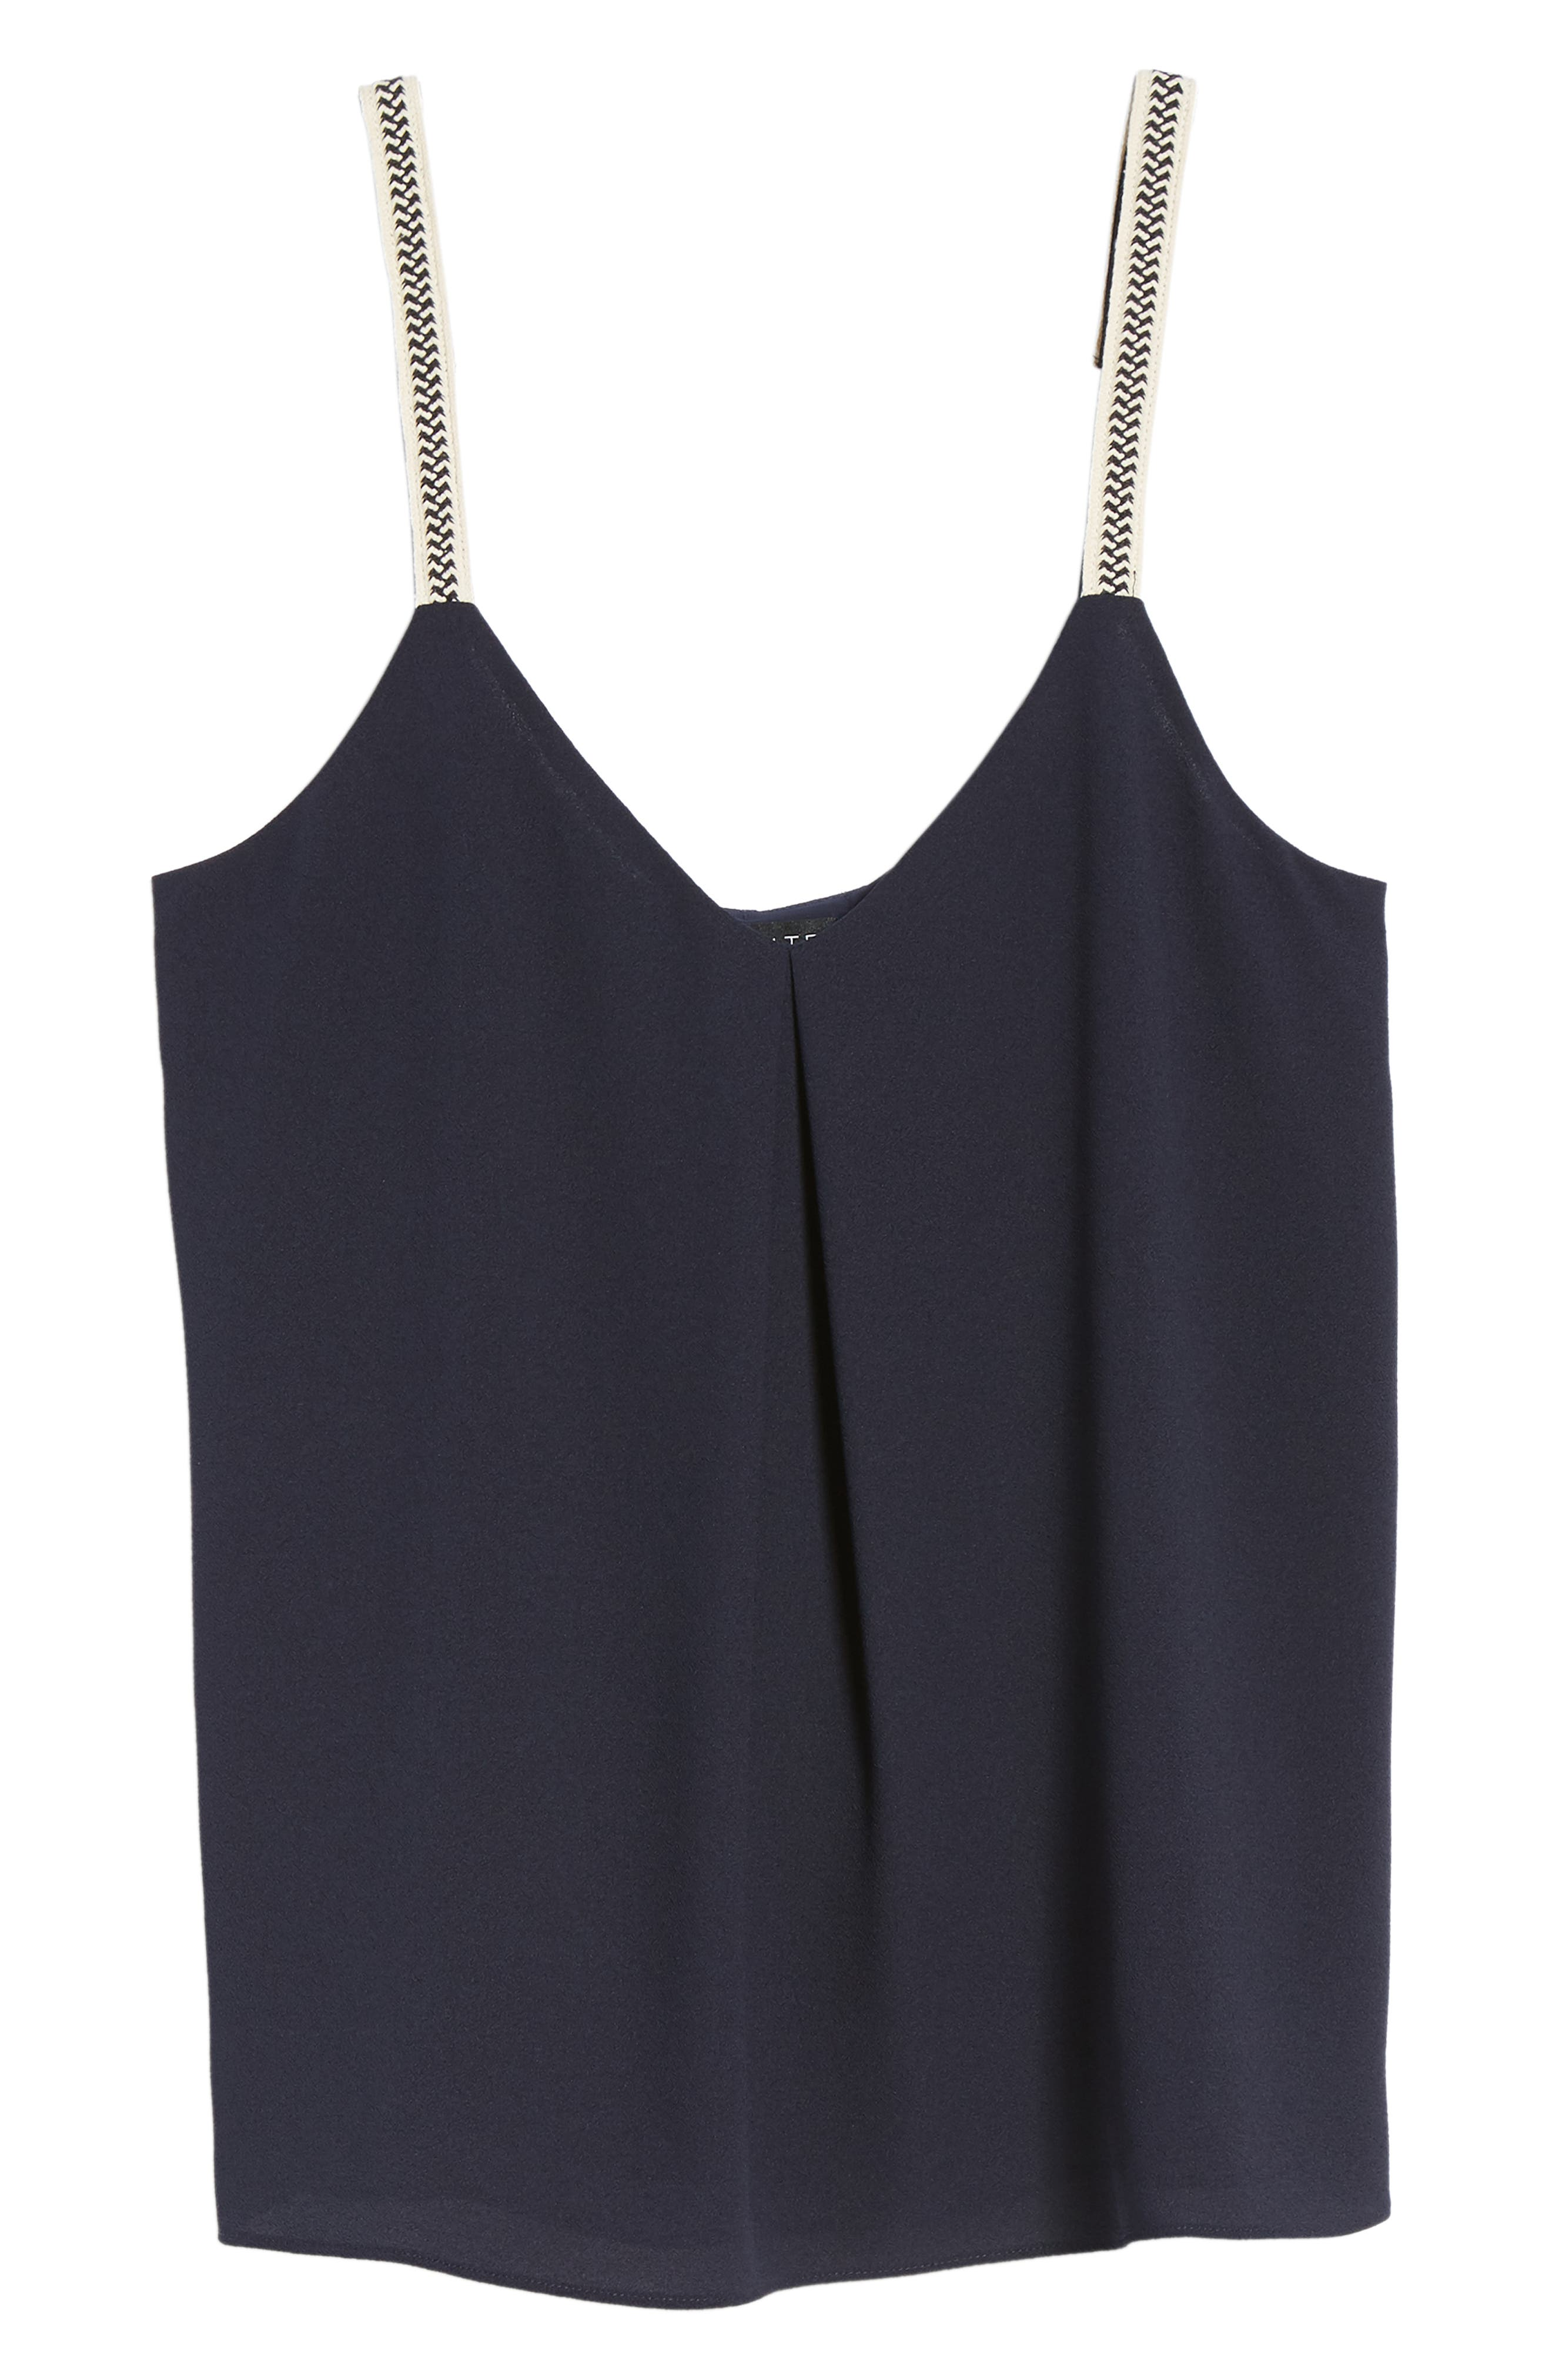 Embroidered Strap Camisole,                             Alternate thumbnail 7, color,                             NIGHT NAVY